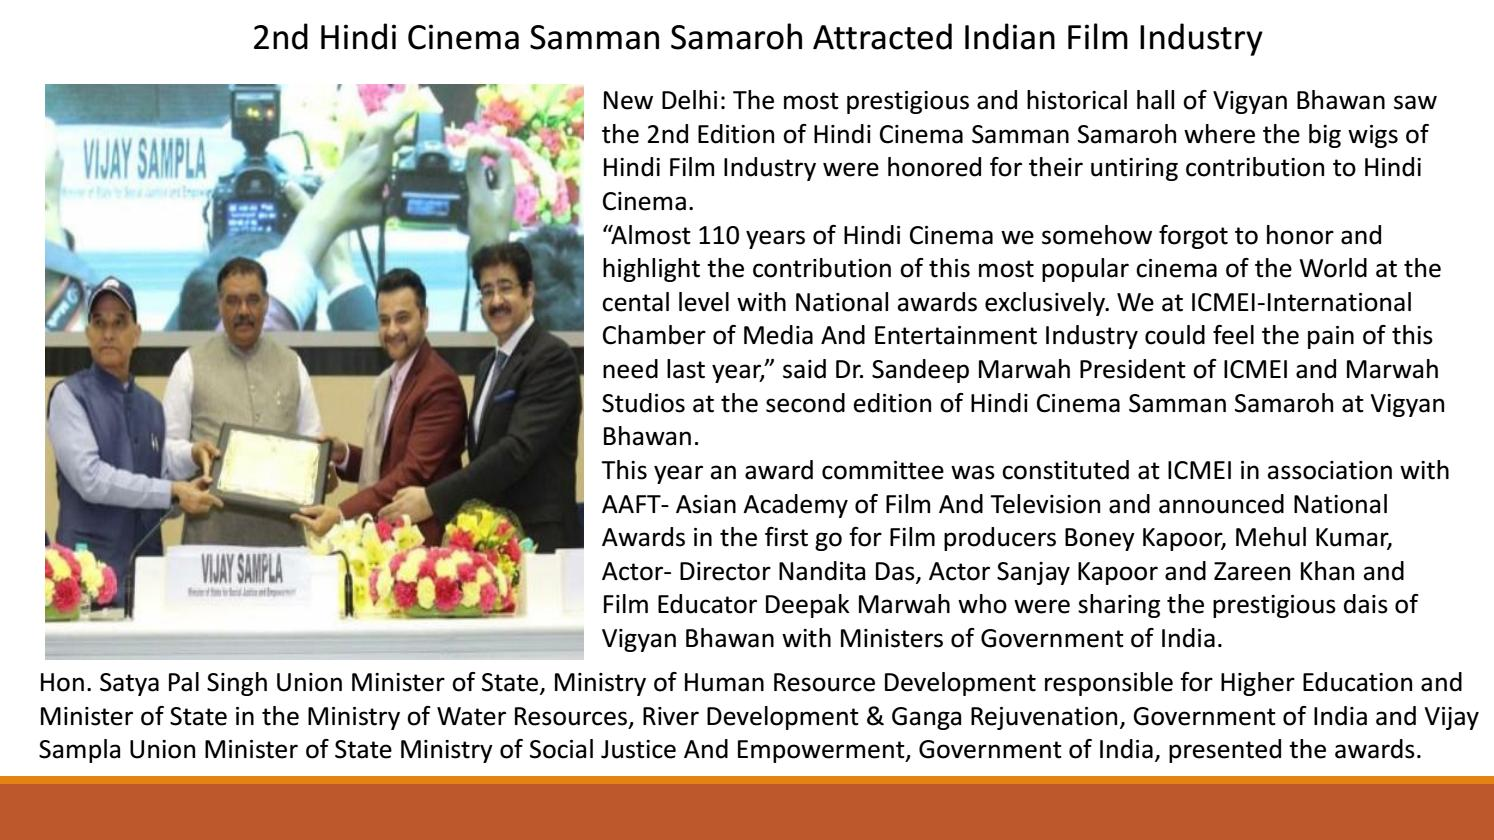 2nd Hindi Cinema Samman Samaroh Attracted Indian Film